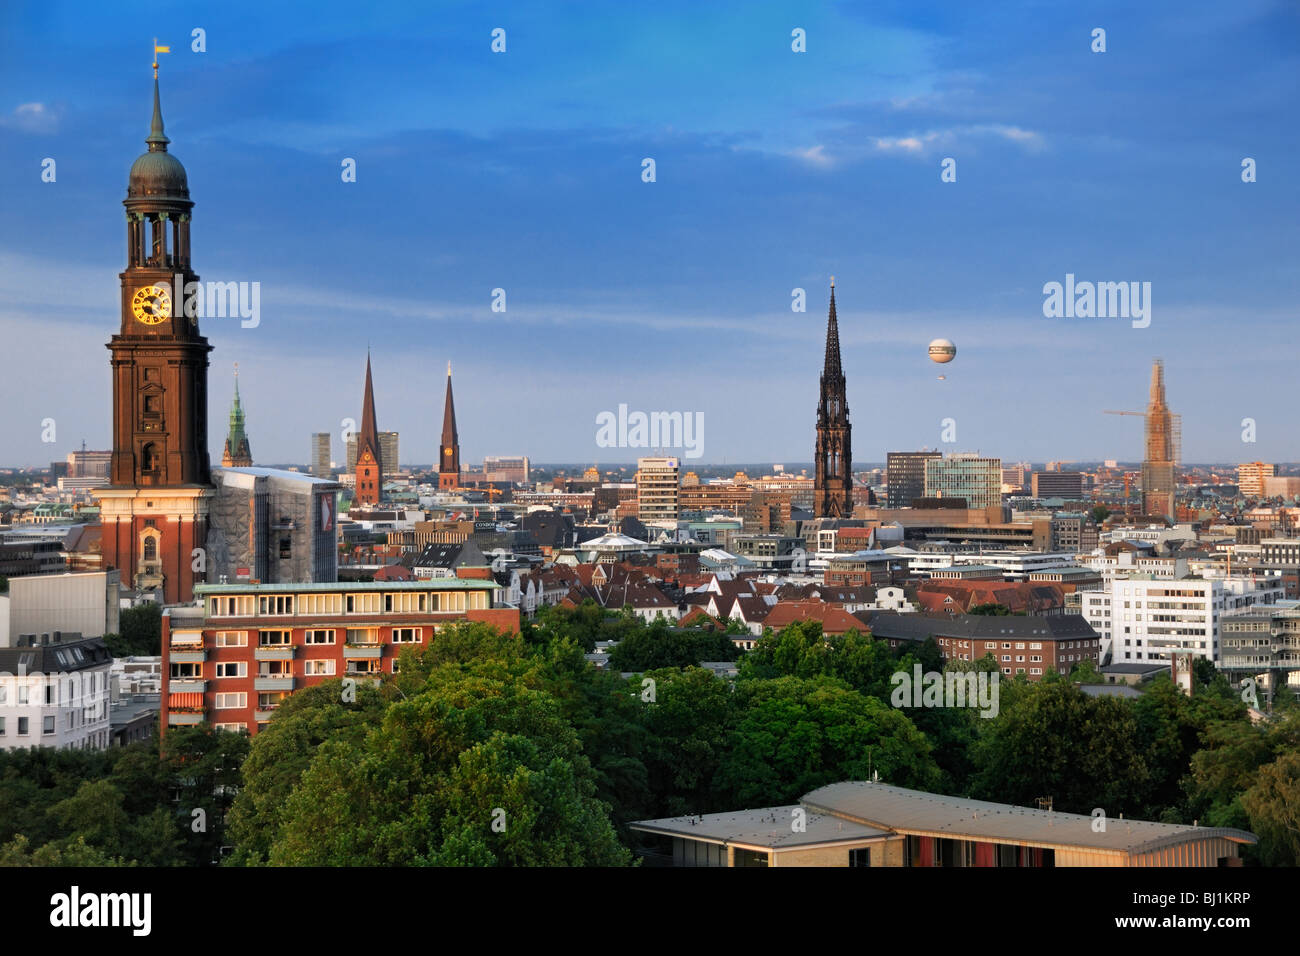 Evening view from the tower-lounge in the Hotel Hafen towards the St. Michaelis Churche and Hamburg, Germany. - Stock Image